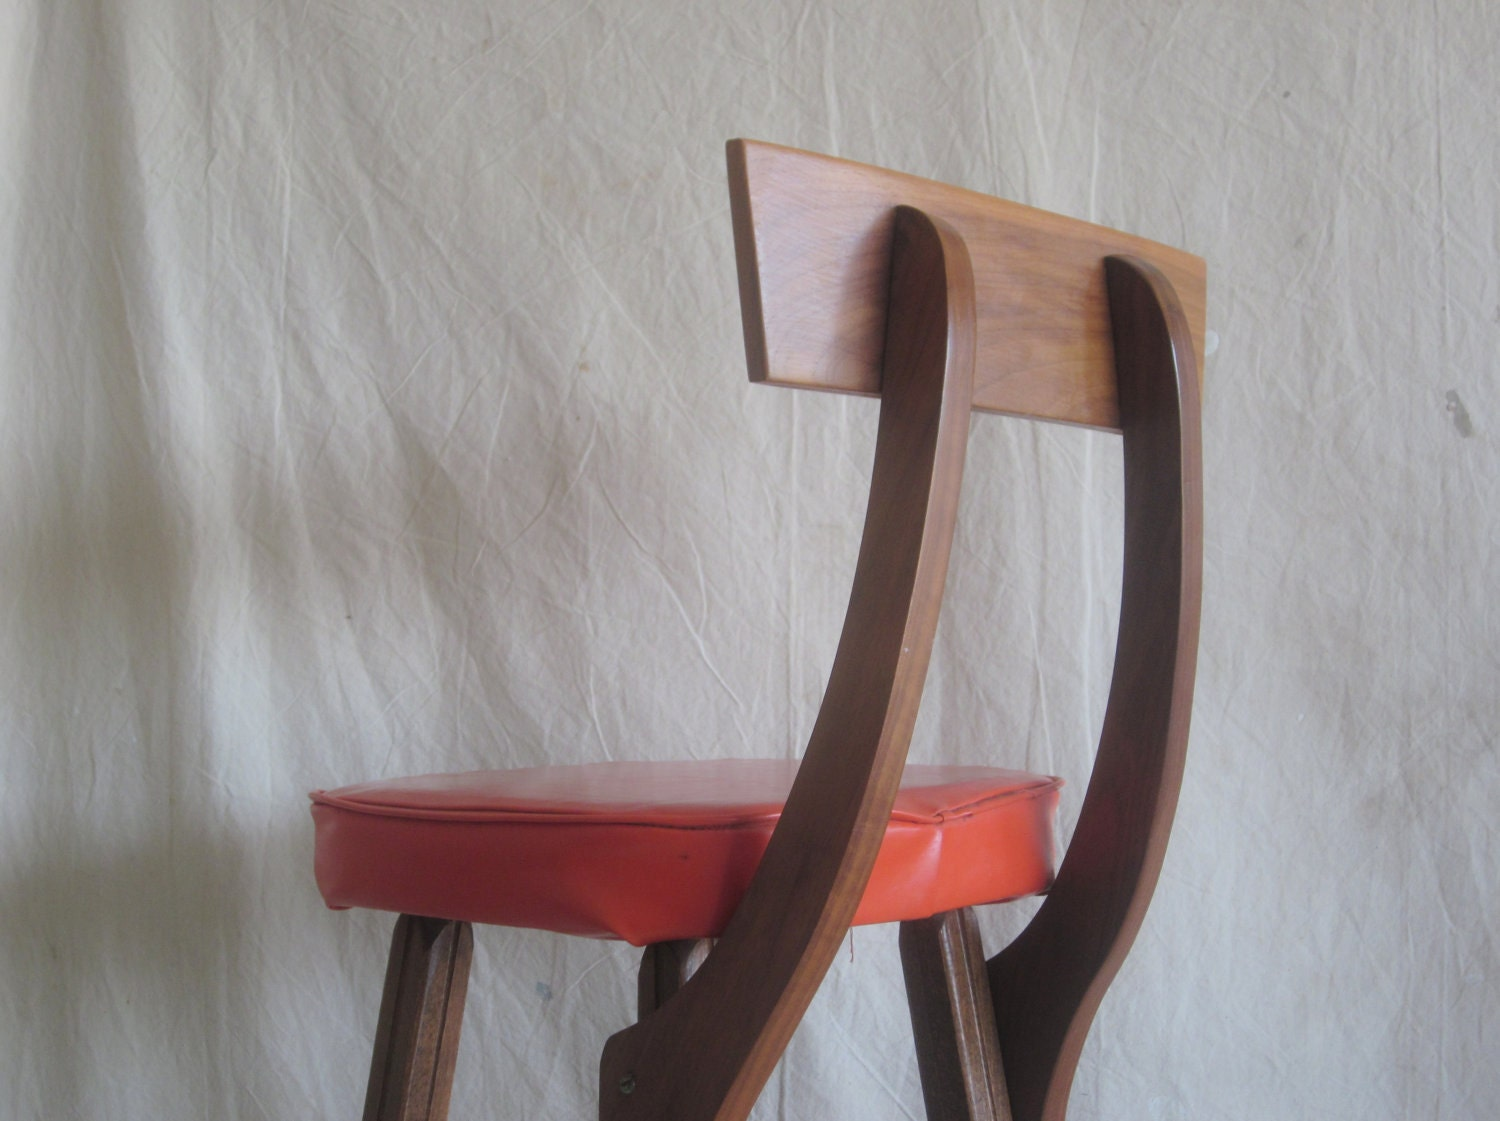 Vintage Mid Century Bar Stool Danish Modern Style Chairs : ilfullxfull346859361 from www.etsy.com size 1500 x 1121 jpeg 191kB